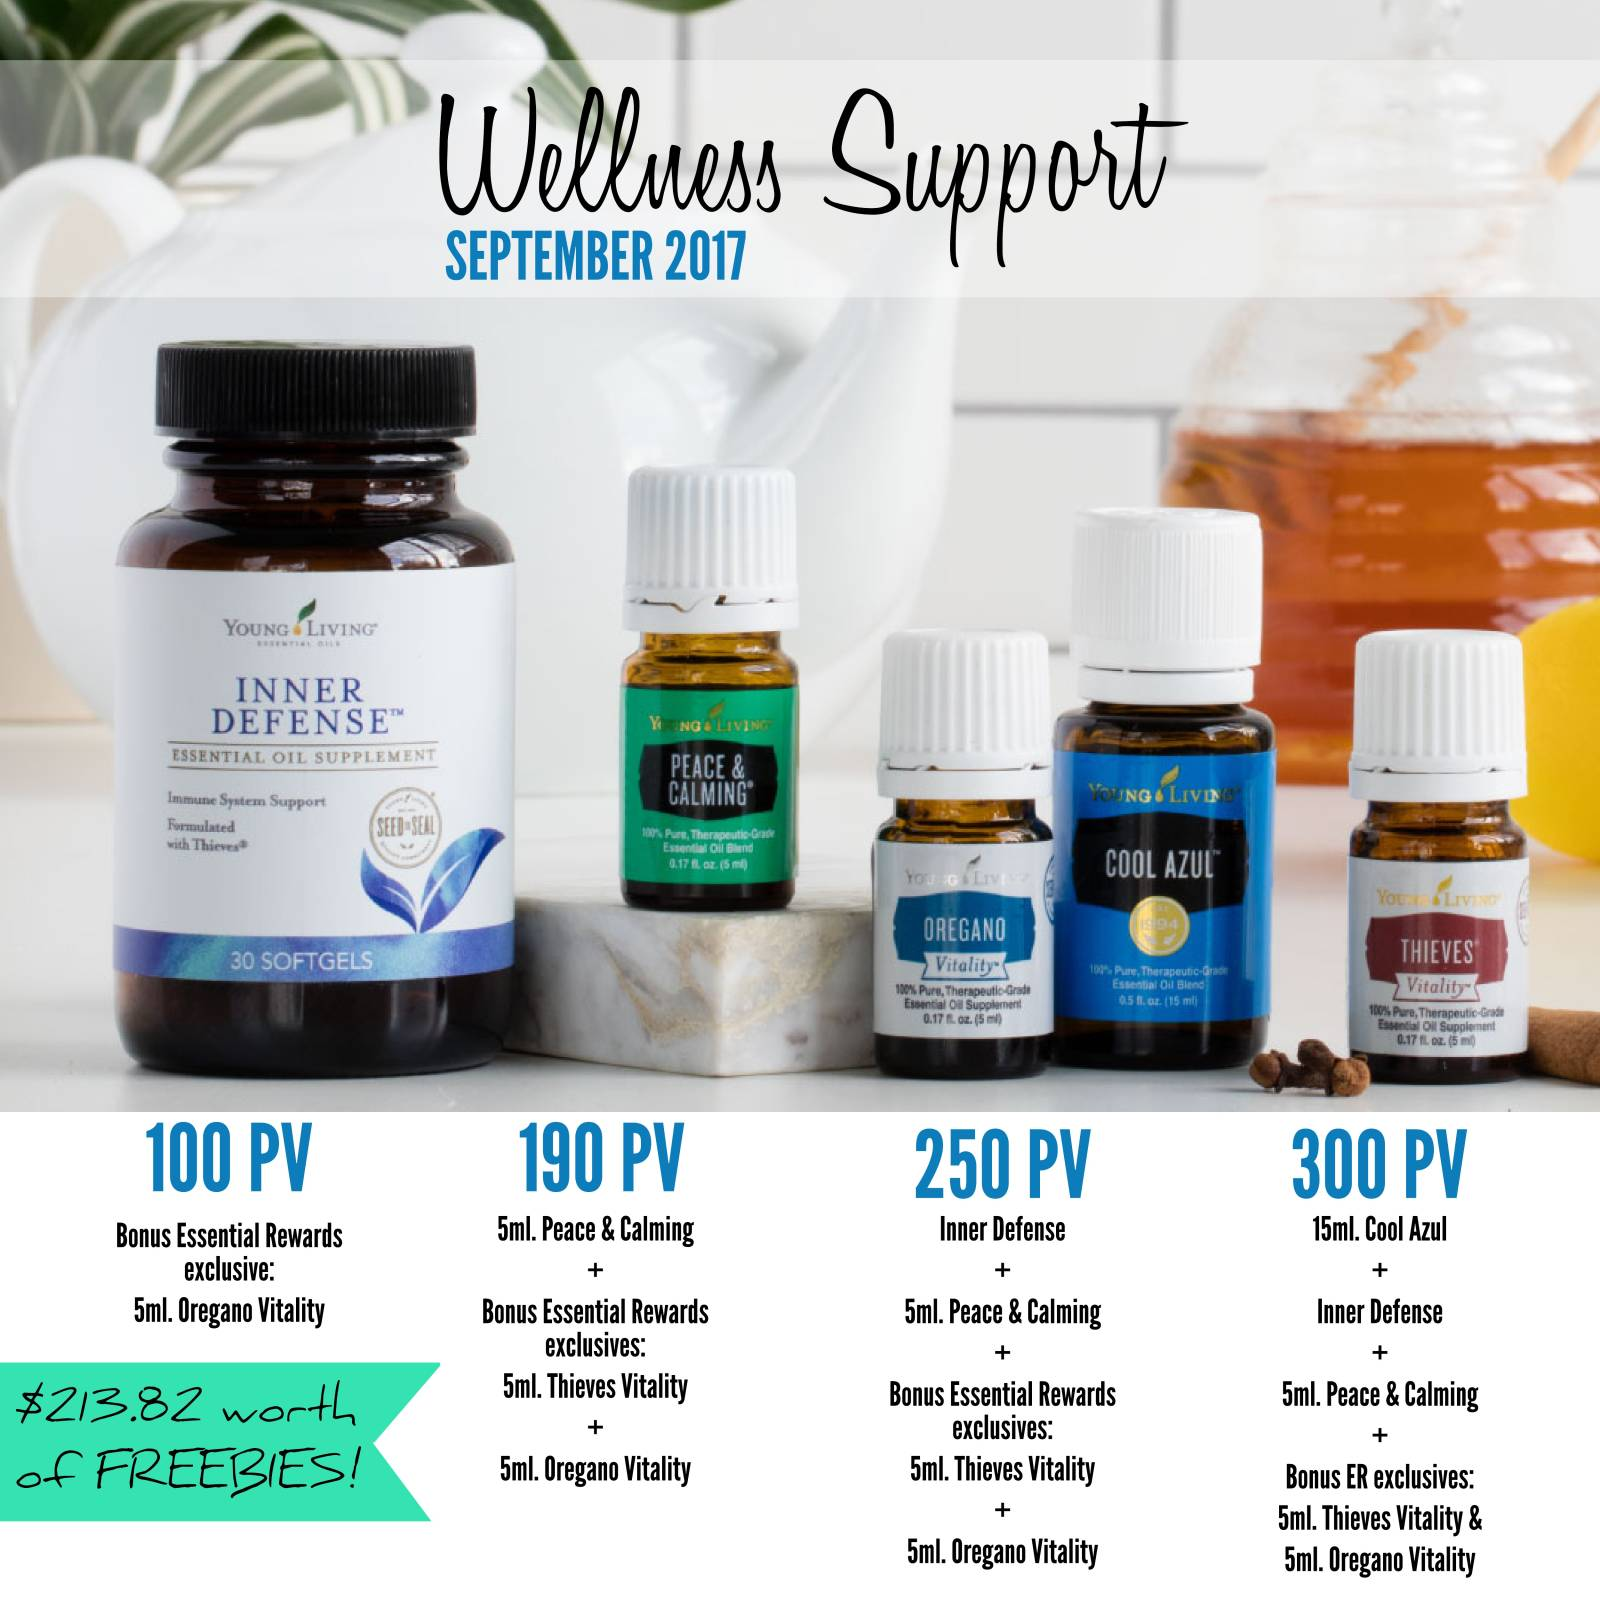 Wellness Support this September! Awesome September rewards and more!